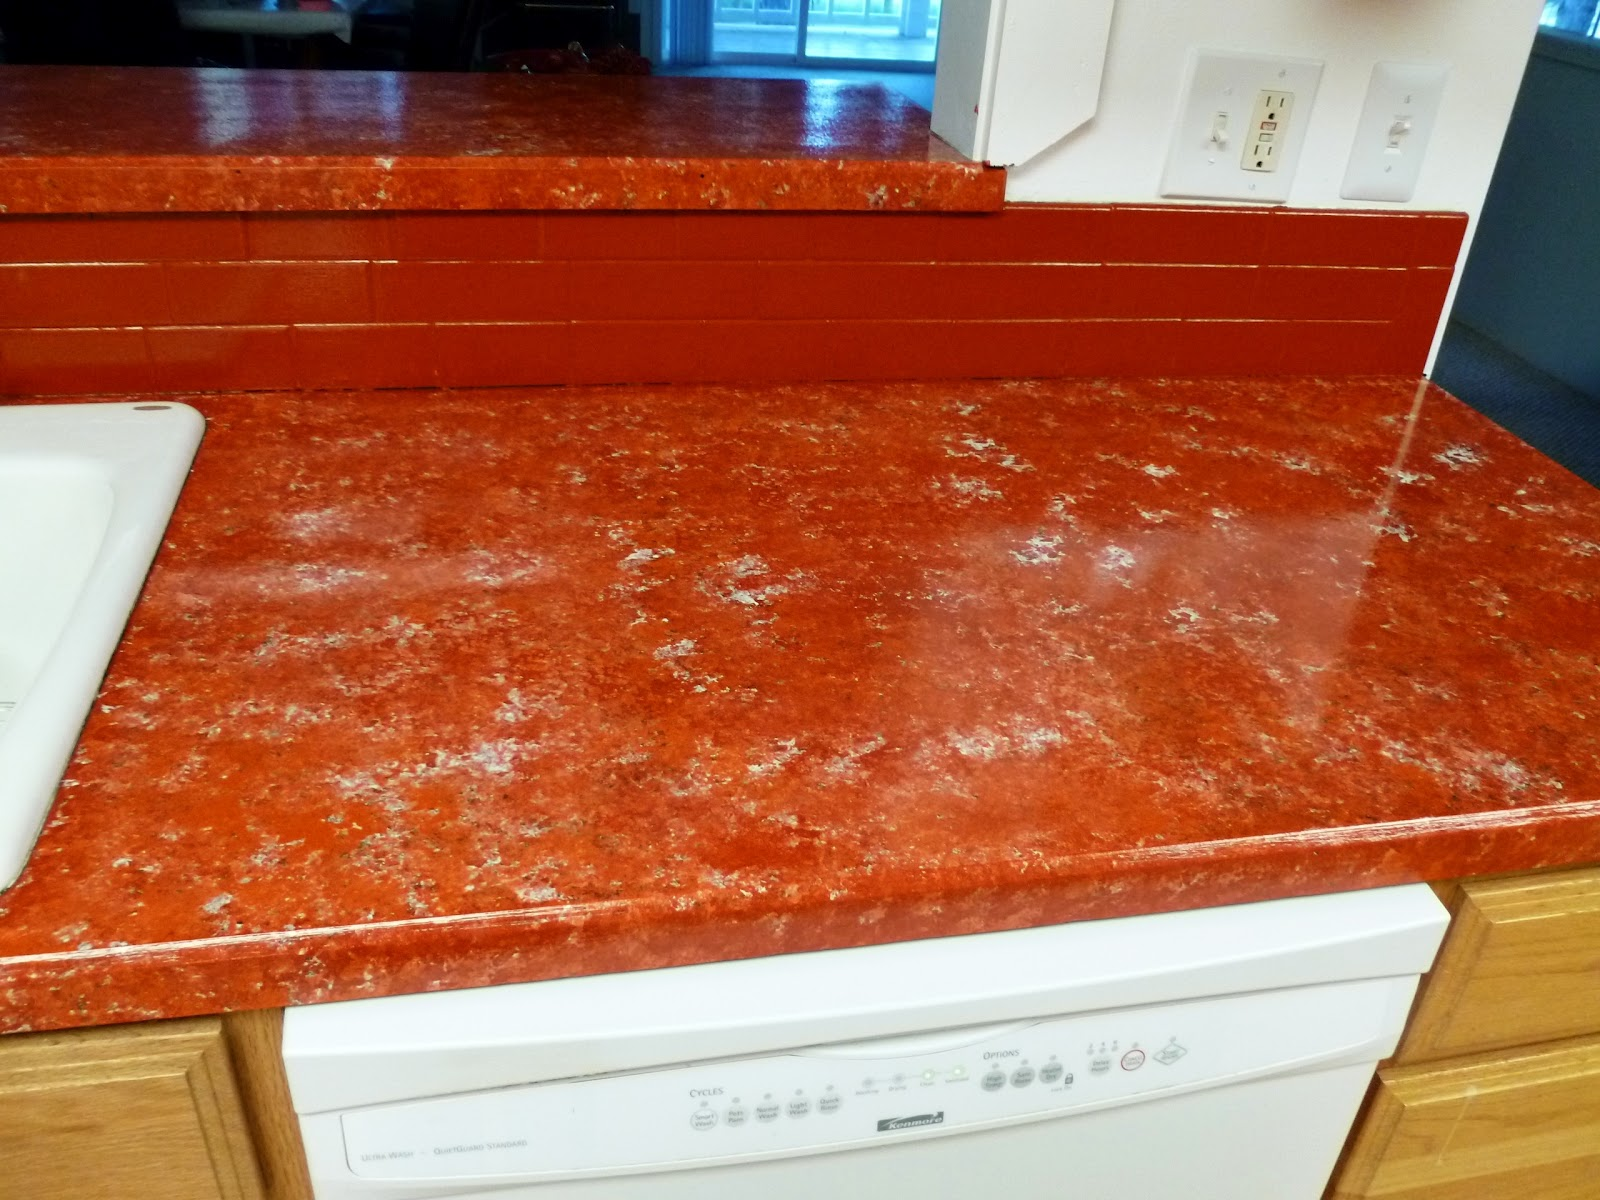 Giani Countertop Paint On Tile : after painting my countertops with Giani countertop paint...